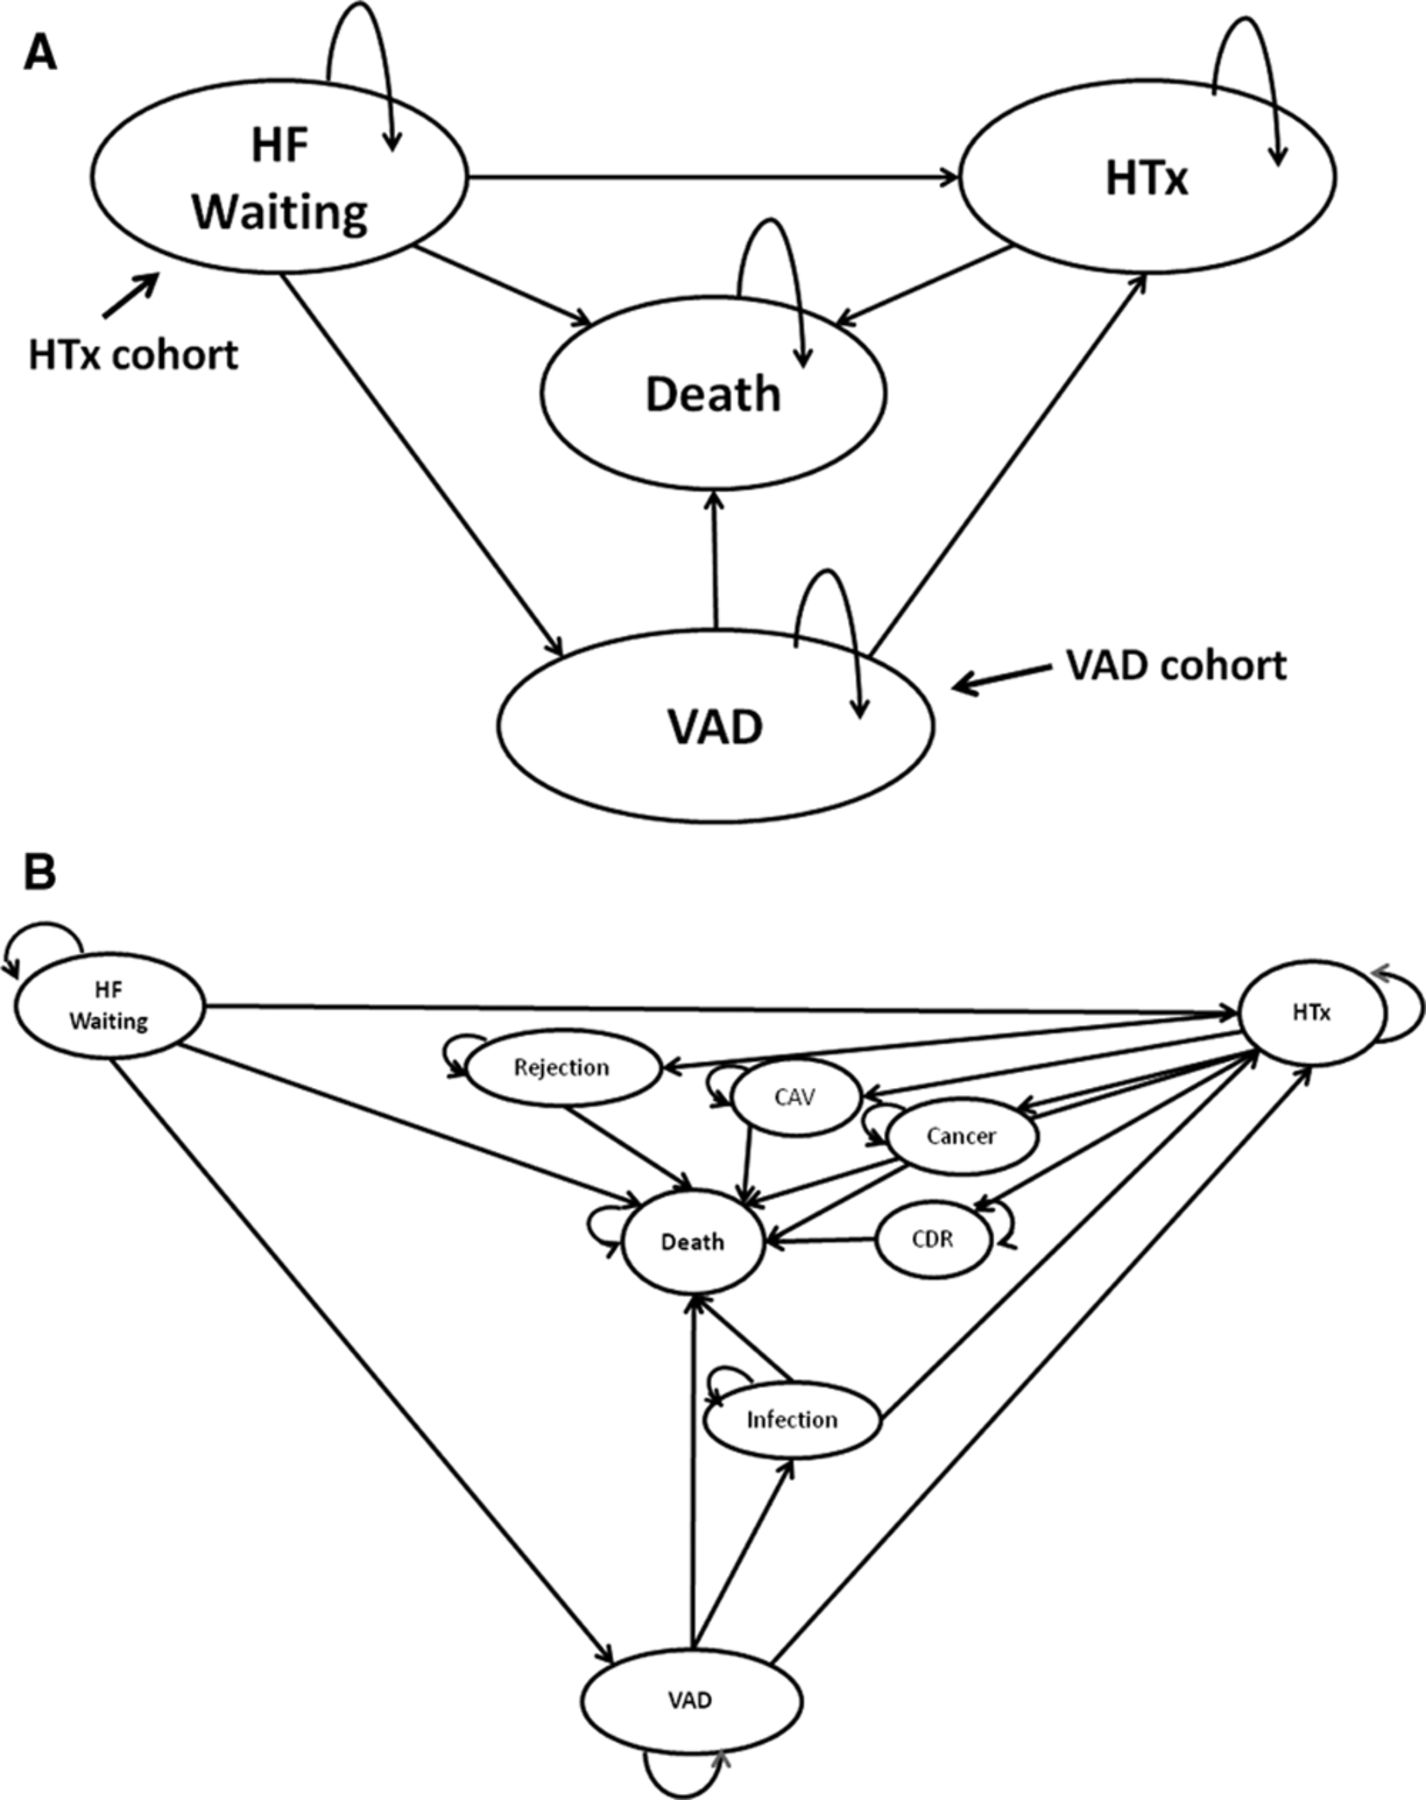 Cost-Effectiveness of Ventricular Assist Device Therapy as